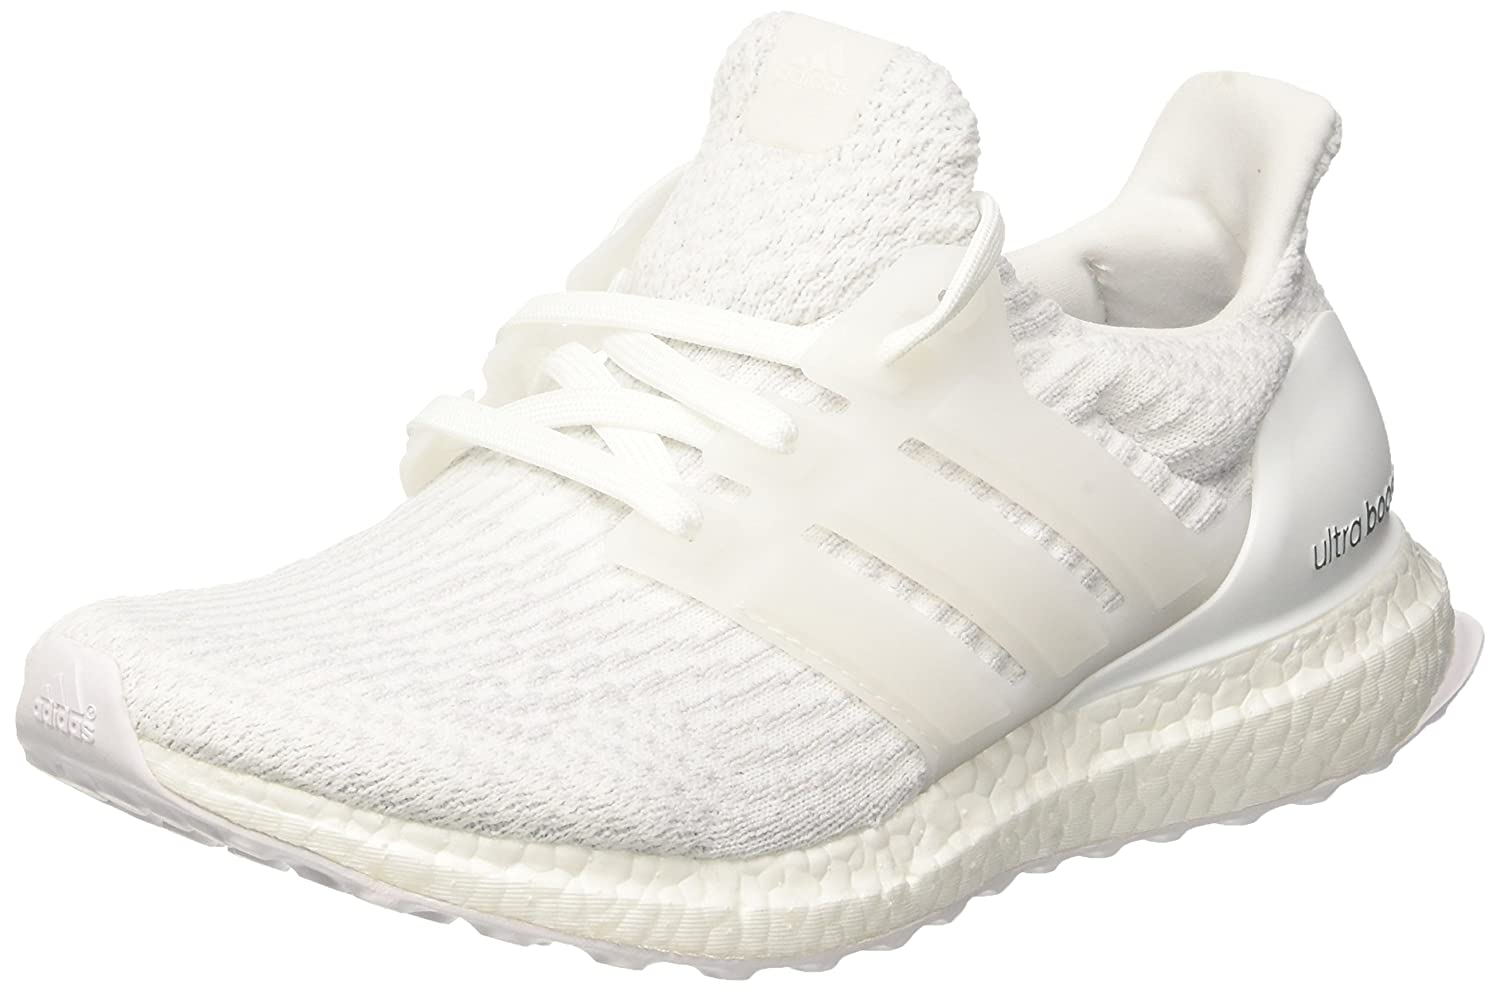 White adidas Performance Men's Ultra Boost M Running shoes